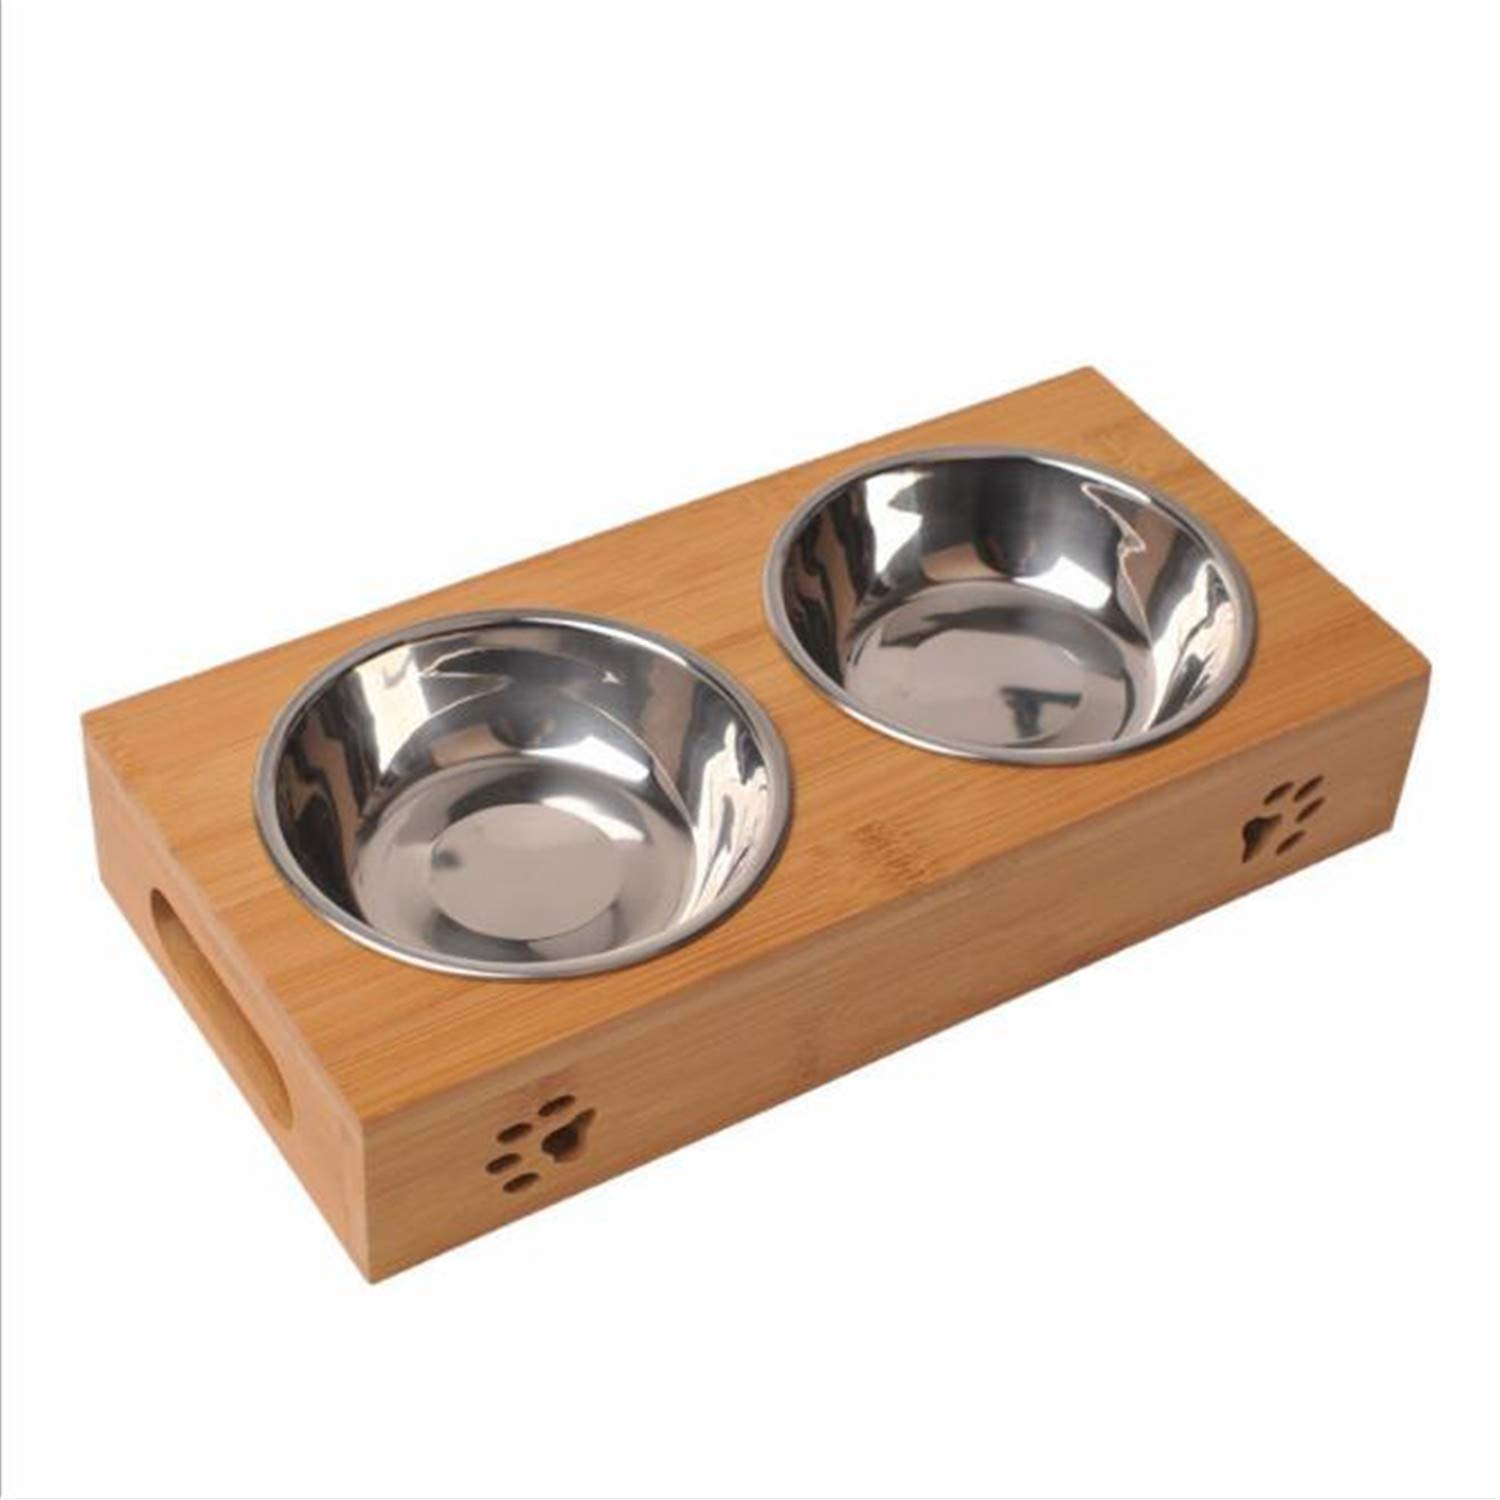 Dog Bowls,Solid Wood Material,Double Stainless Steel Bowls Removable Dog Cat Food Water Bowl,Environment Friendly